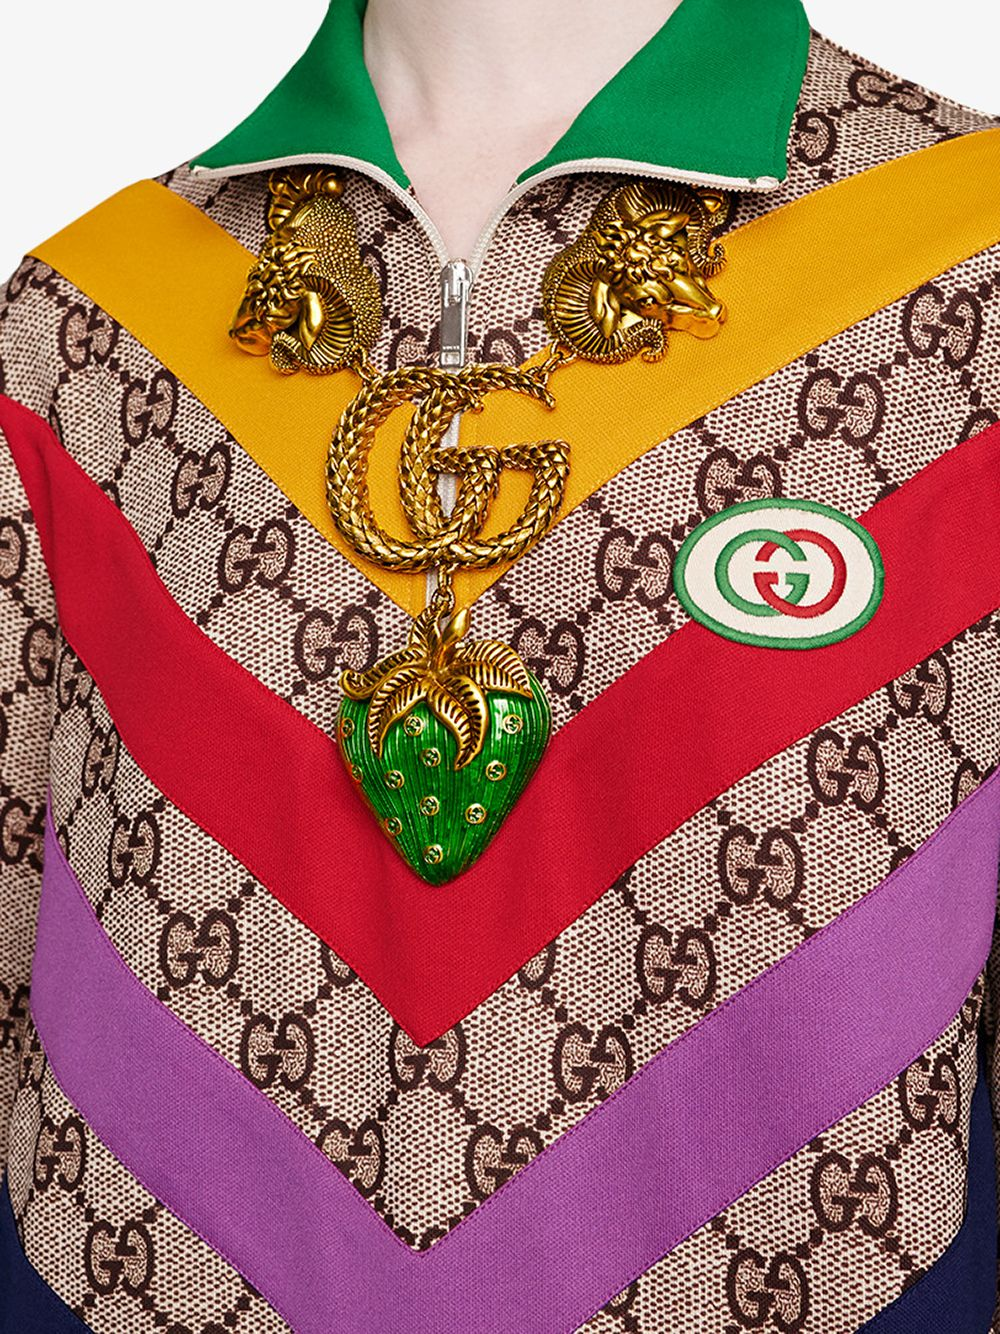 Gucci Supreme all over printed mid-dress with multicolor bands GUCCI |  | 580583-XJBGT2270